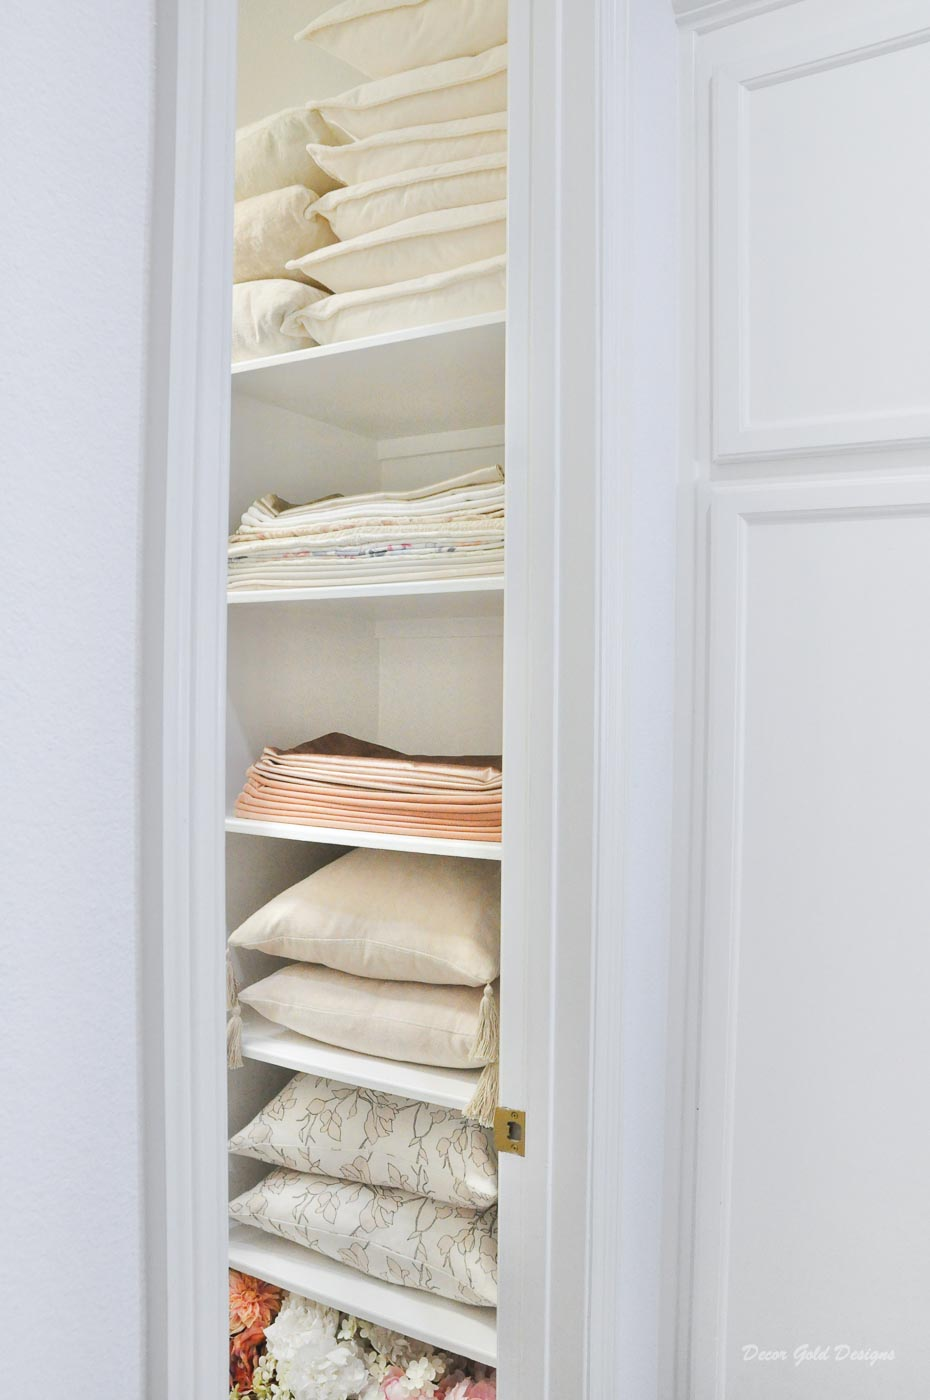 Entertaining closet organization